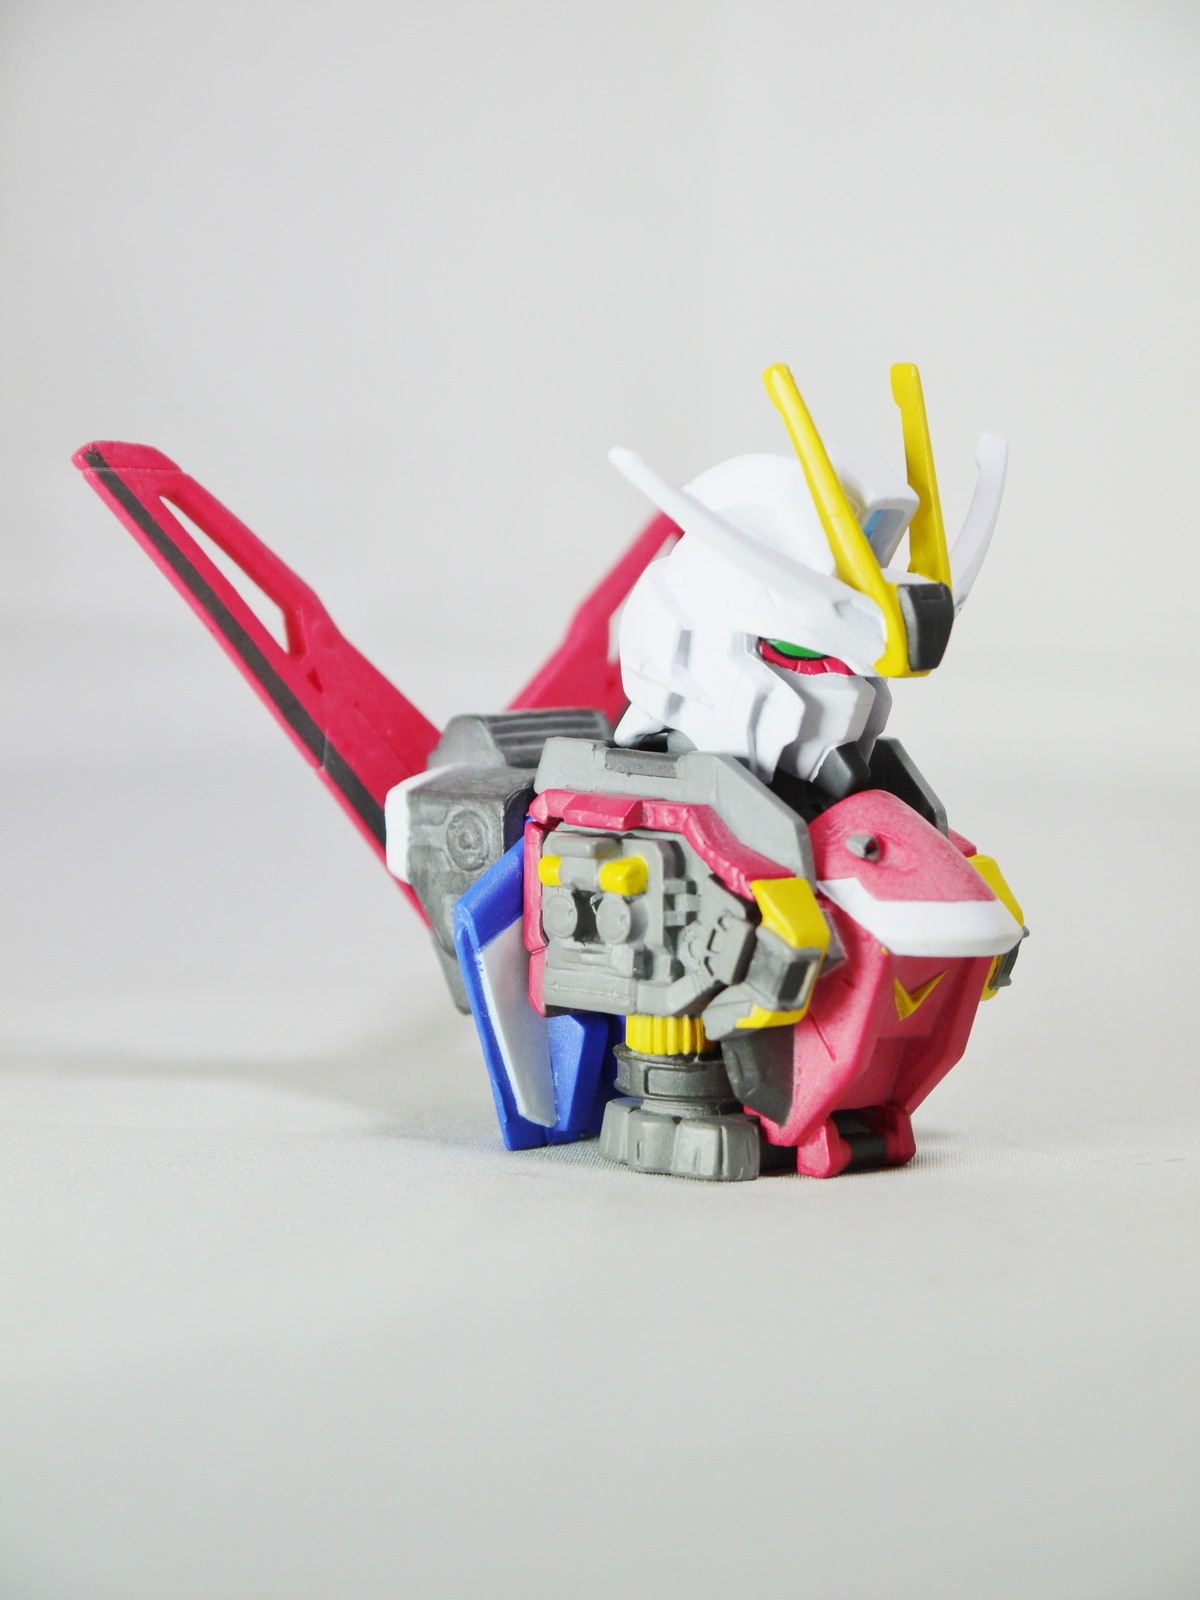 Bandai Gundam Seed Destiny Sword Impulse Head Figure GUNDAMHEAD Series